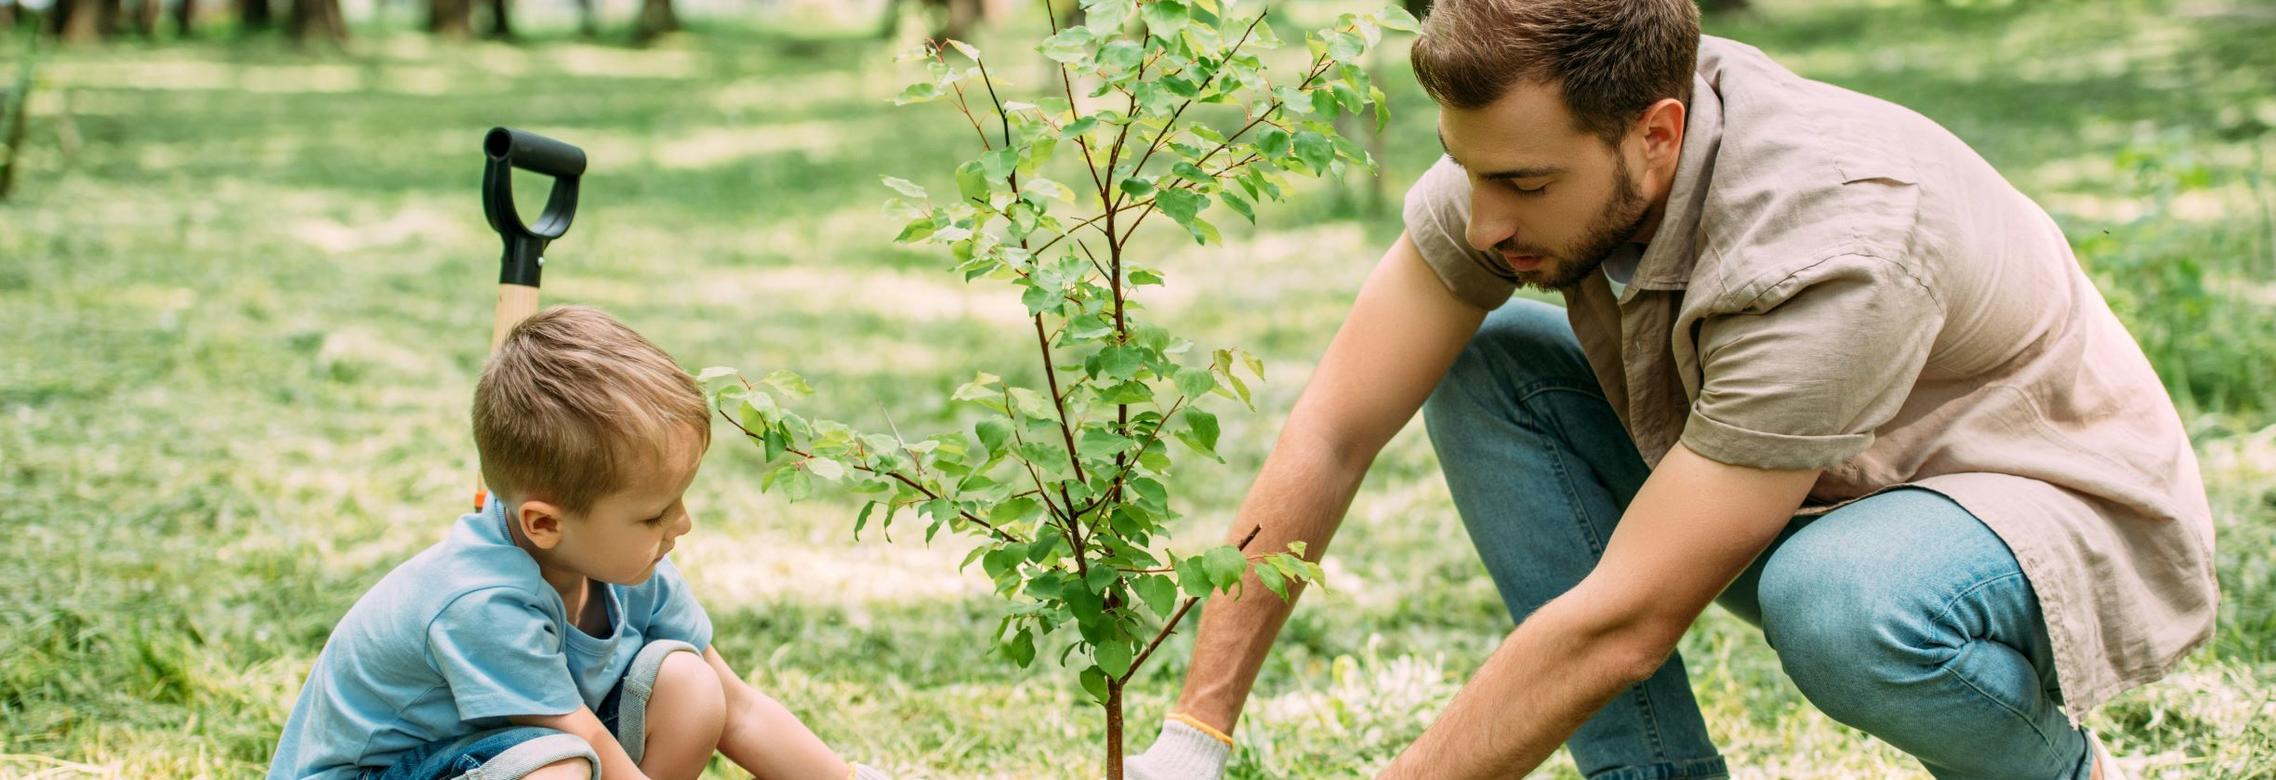 Green Living - Father and Son Planting Tree